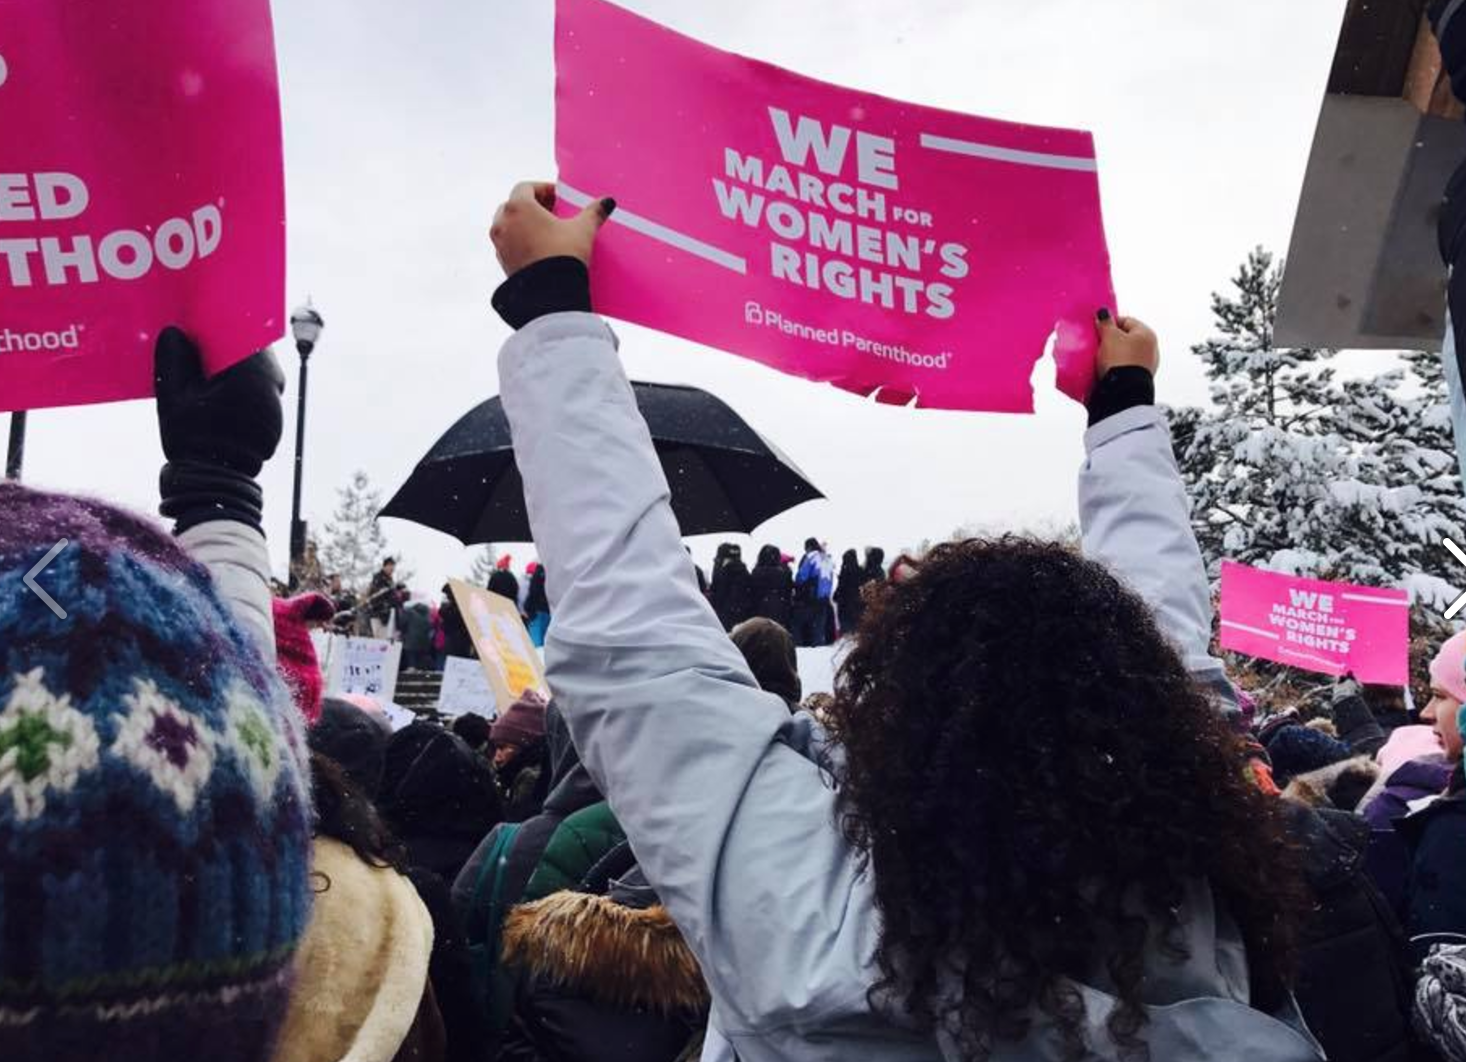 Snowboots, celebs, and civil rights: I marched for gender equality at Sundance Film Festival